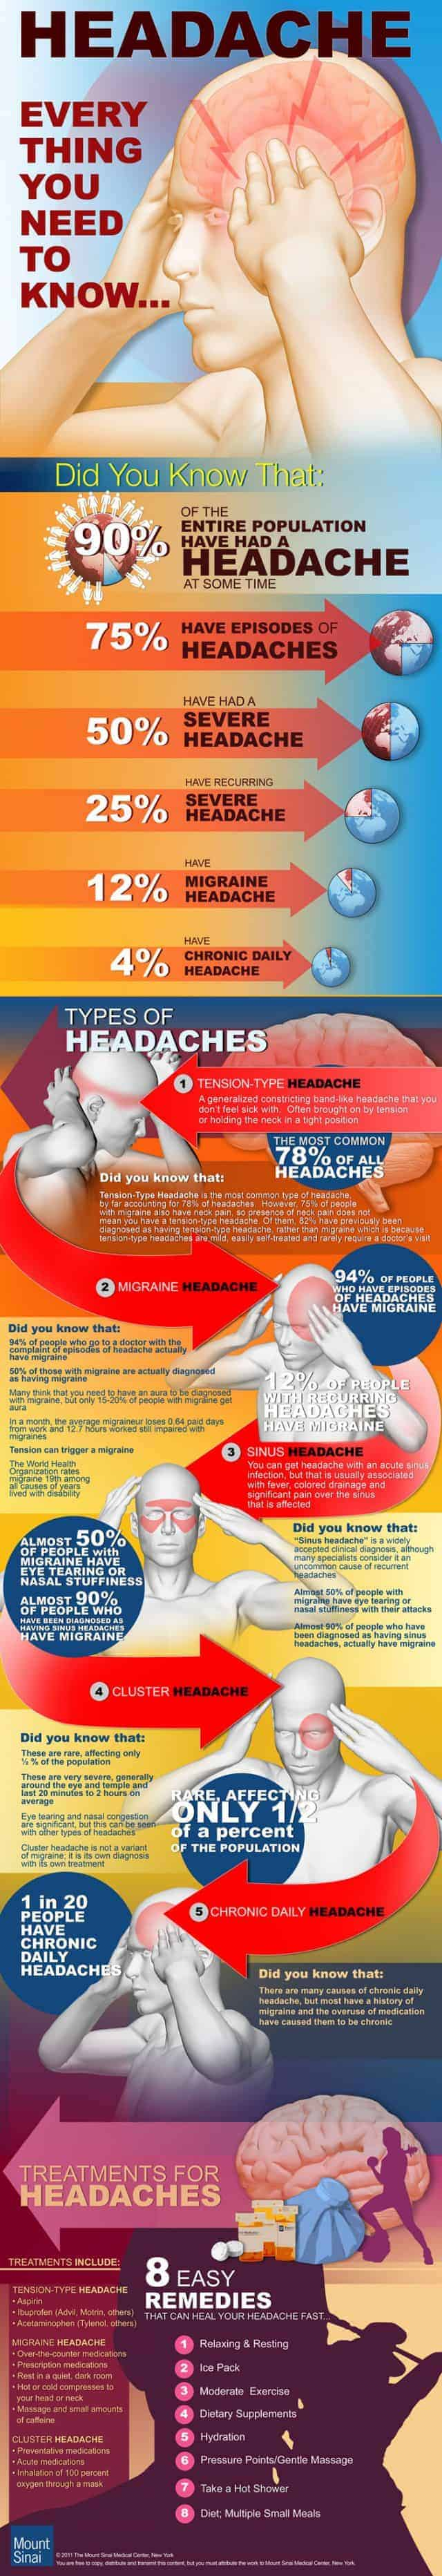 HEADACHE.Infographic704-640x3729